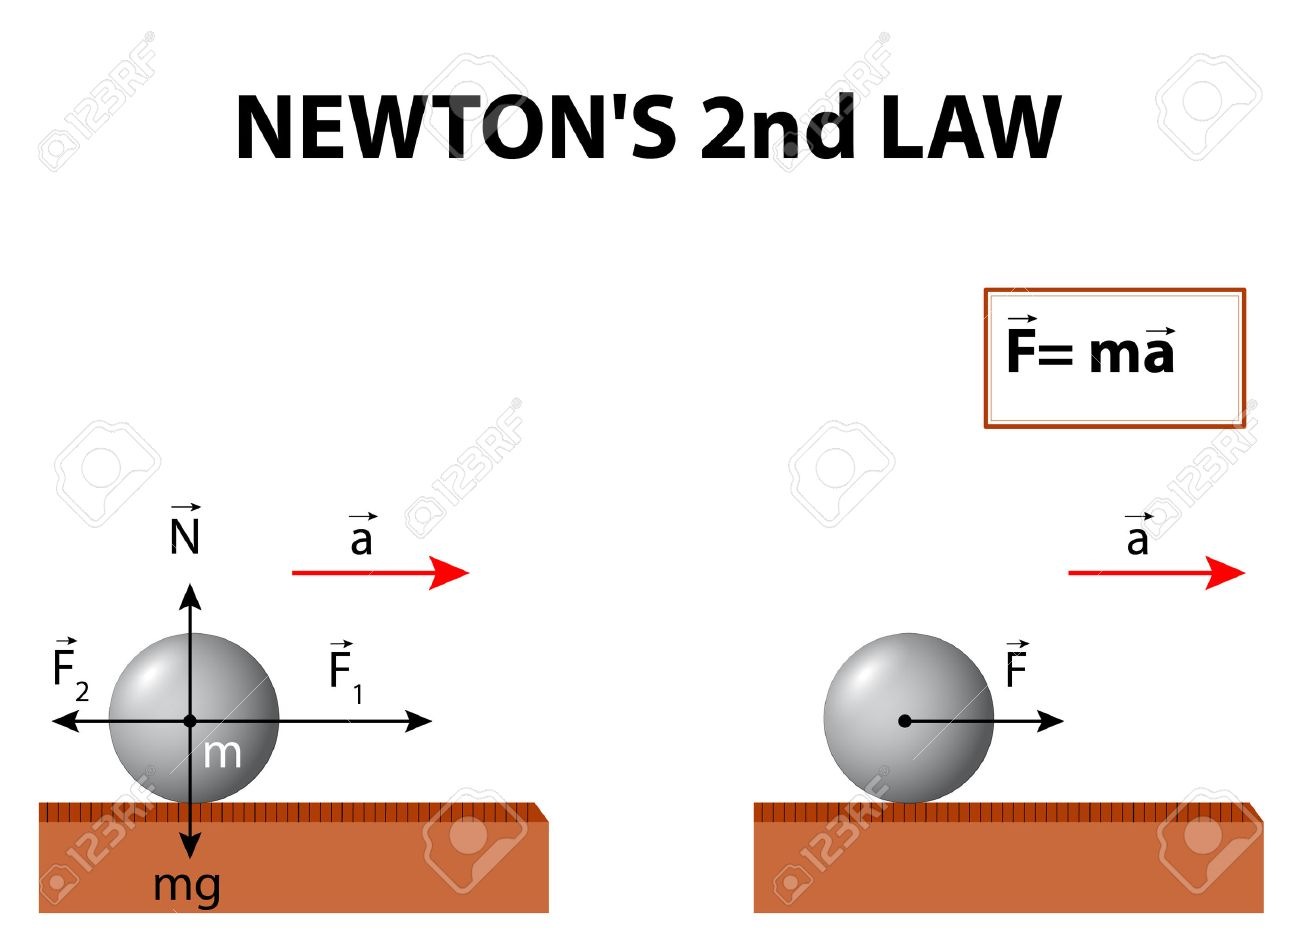 Newton's Second Law. Newton�s Second Law Of Motion Is About The.. Royalty Free Cliparts, Vectors, And Stock Illustration. Image 54511467.